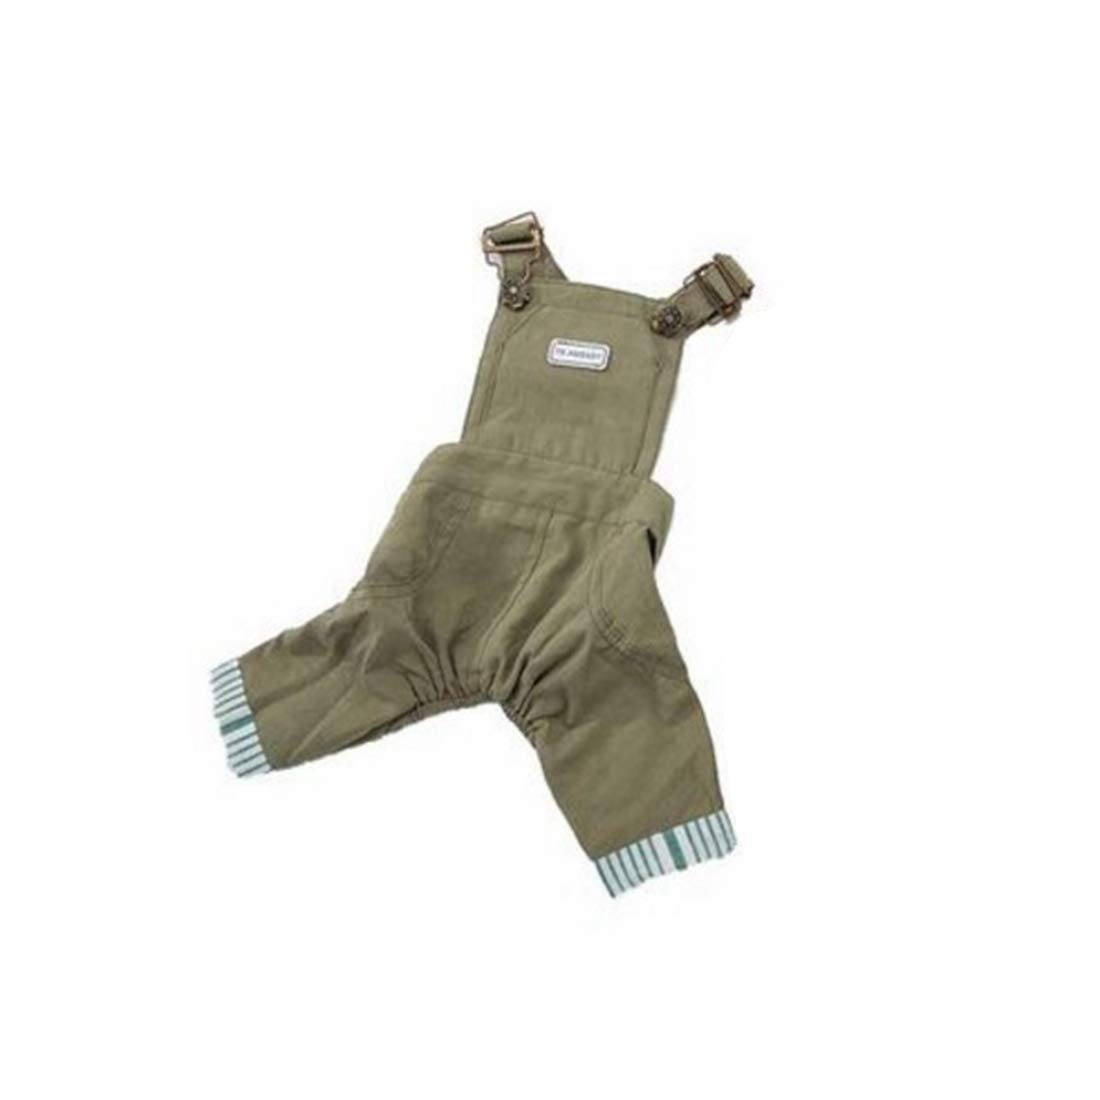 Green XL Green XL Huayue Originative Dog Summer Clothes Tog Clothing Jumpsuit for Puppy Doggy Cat (color   Green, Size   XL)